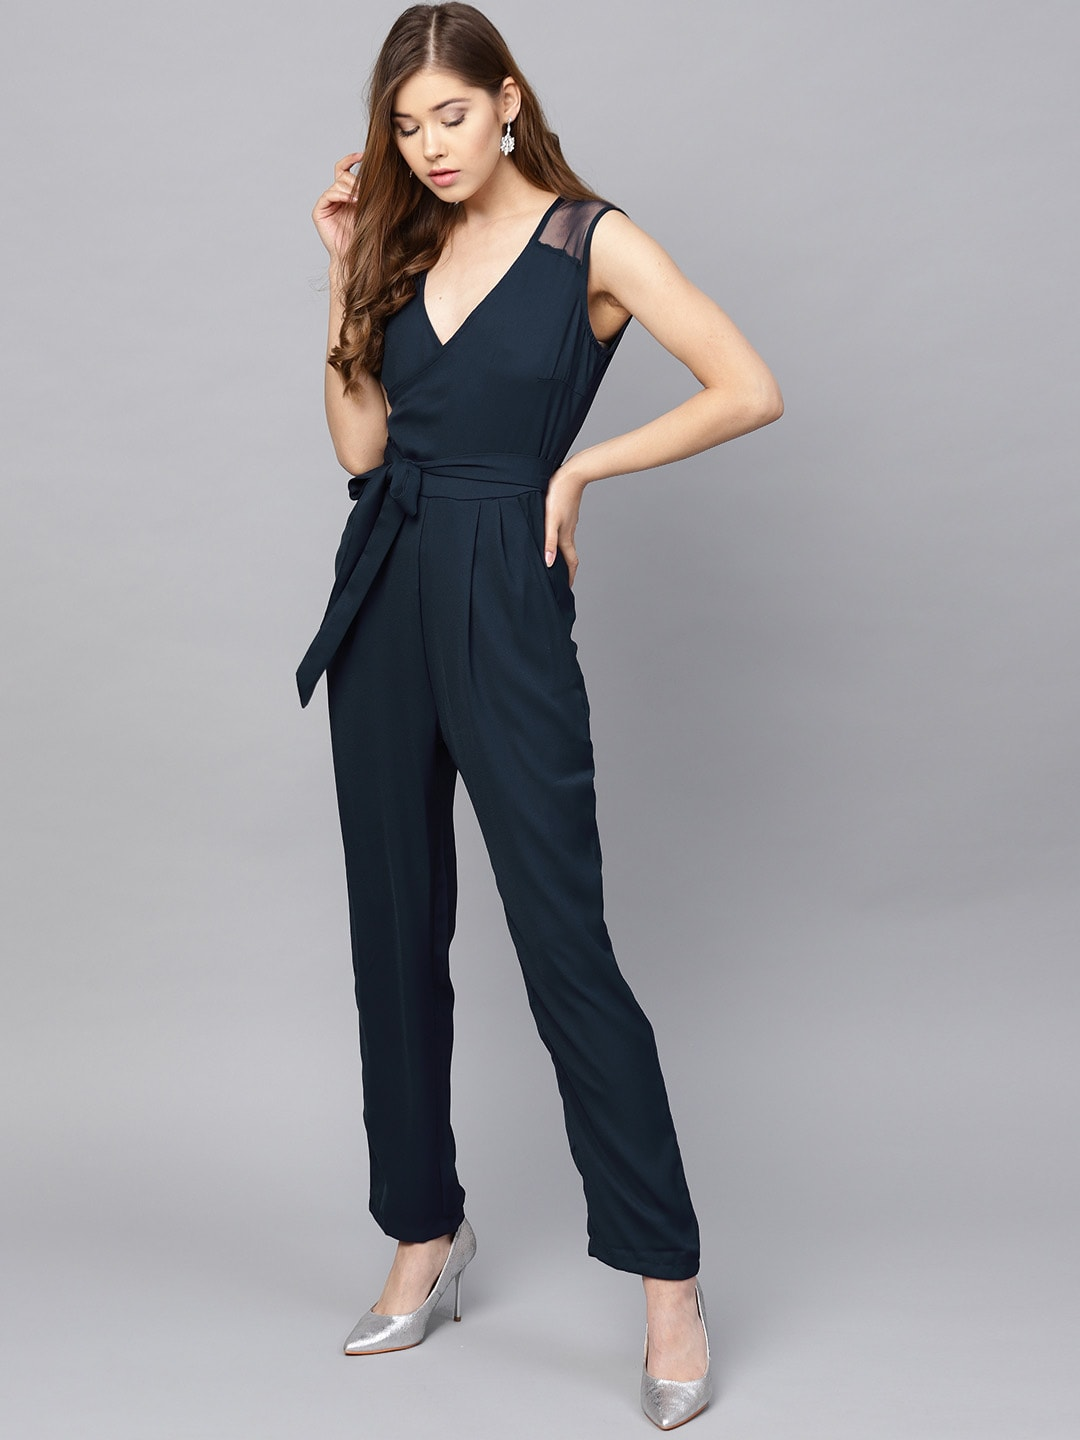 dca8efc9fe Jumpsuits - Buy Jumpsuits For Women